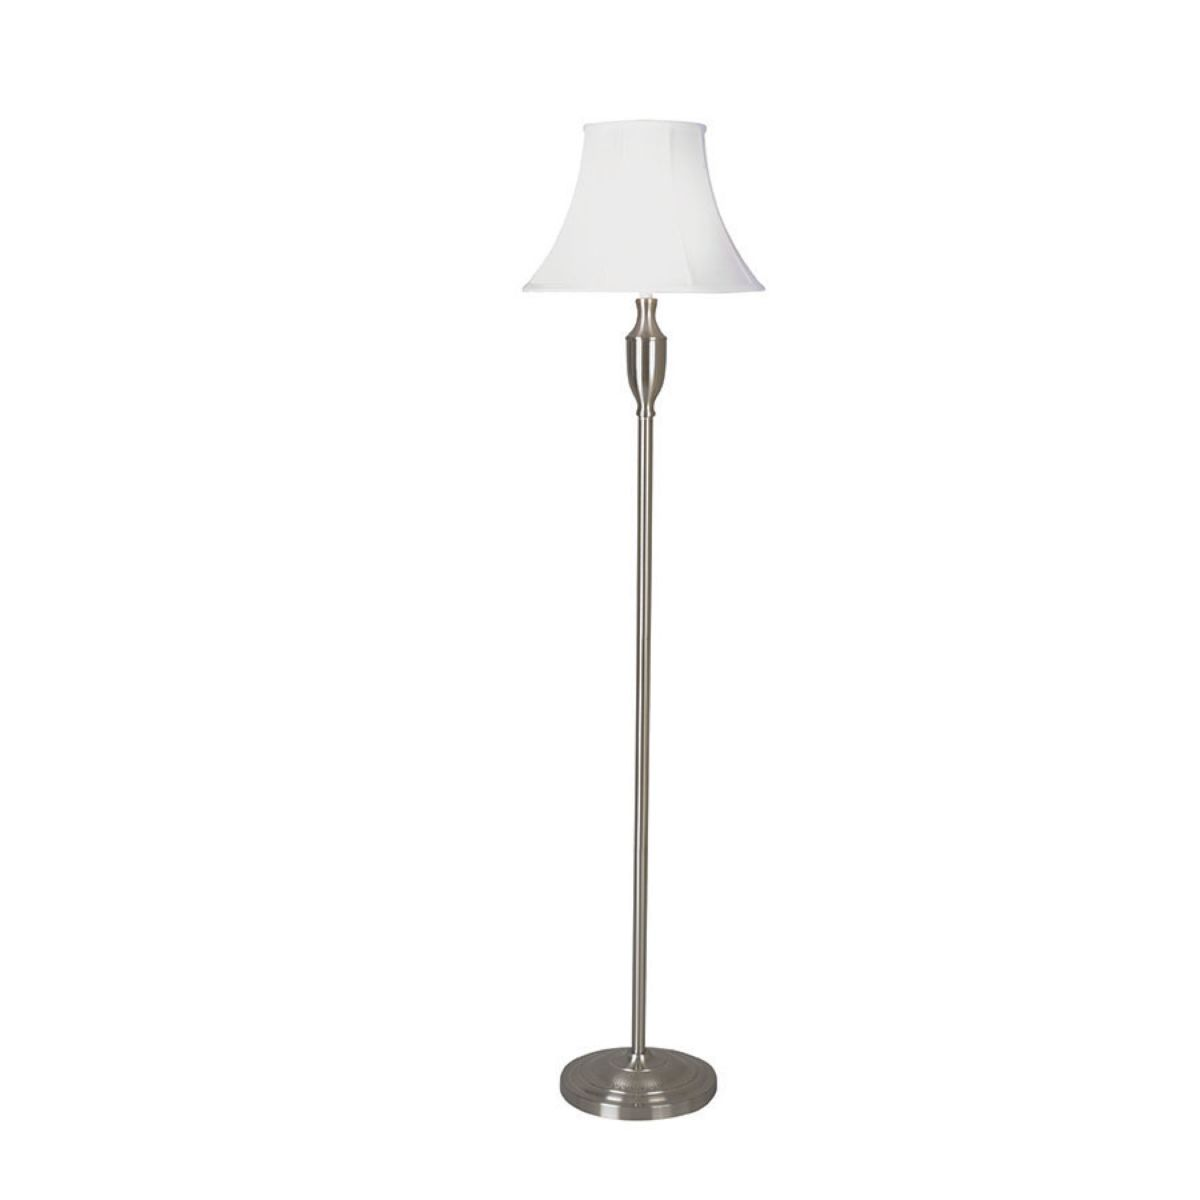 Village At Home Vienna Satin Floor Lamp - Chrome